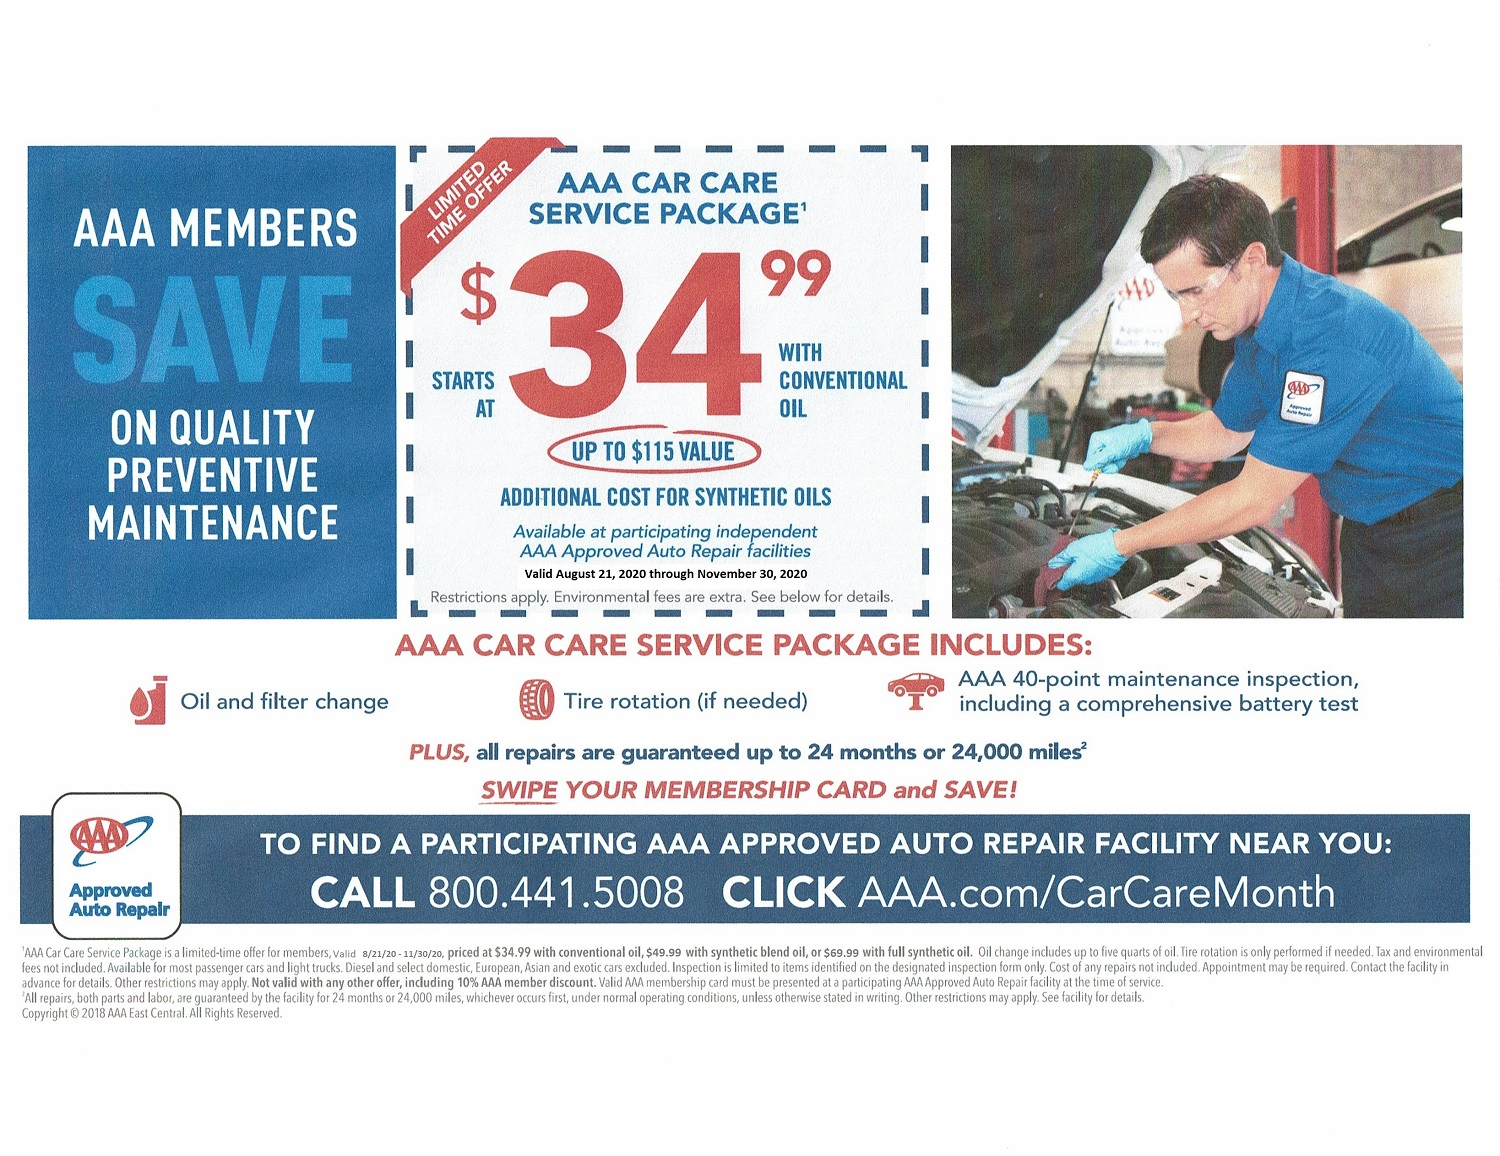 Now is the time to get your vehicle serviced before Fall! We are offering this package to ALL of our customers, and we are also extending the warranty period to 36 months or 36,000 miles! This package includes a synthetic blend oil change (up to 5 qts), tire rotation (if needed), battery test, and 40 point complimentary inspection. This is a great deal to make sure you are safe on the road before the weather changes.